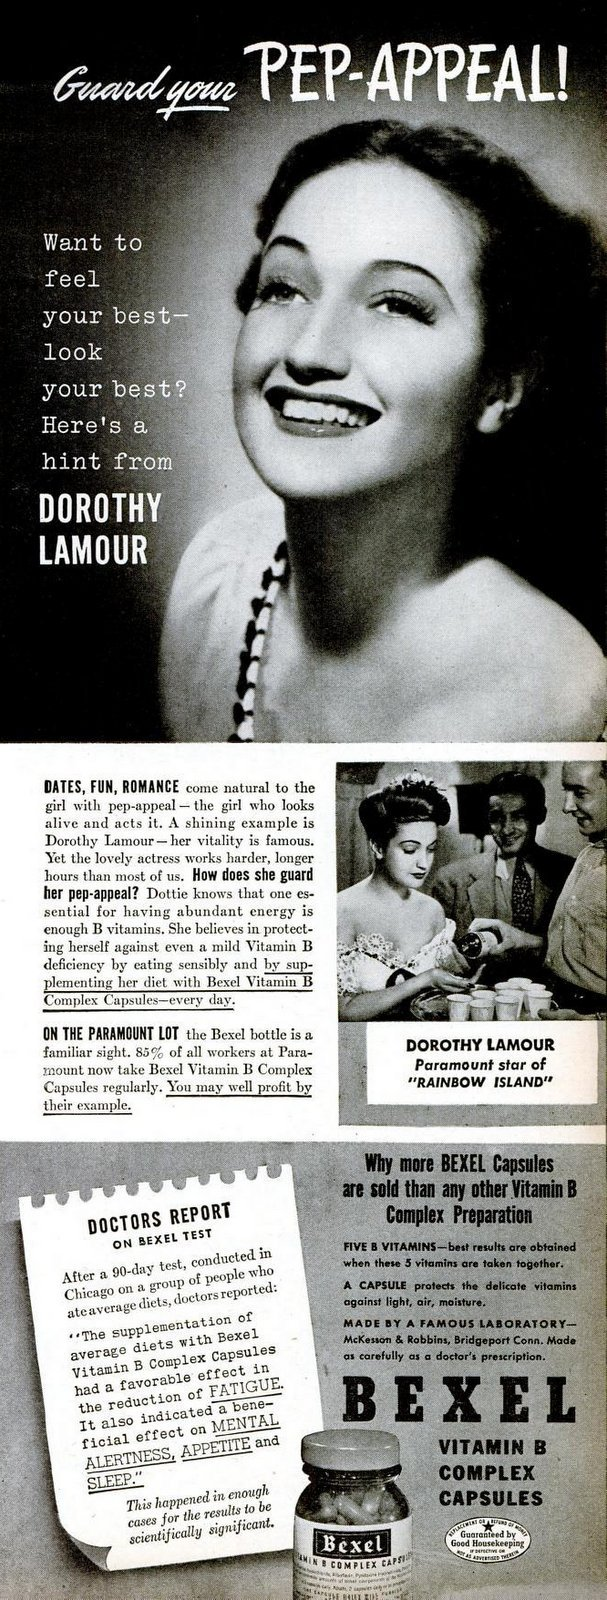 Dorothy Lamour - Pep appeal - LIFE Oct 9, 1944